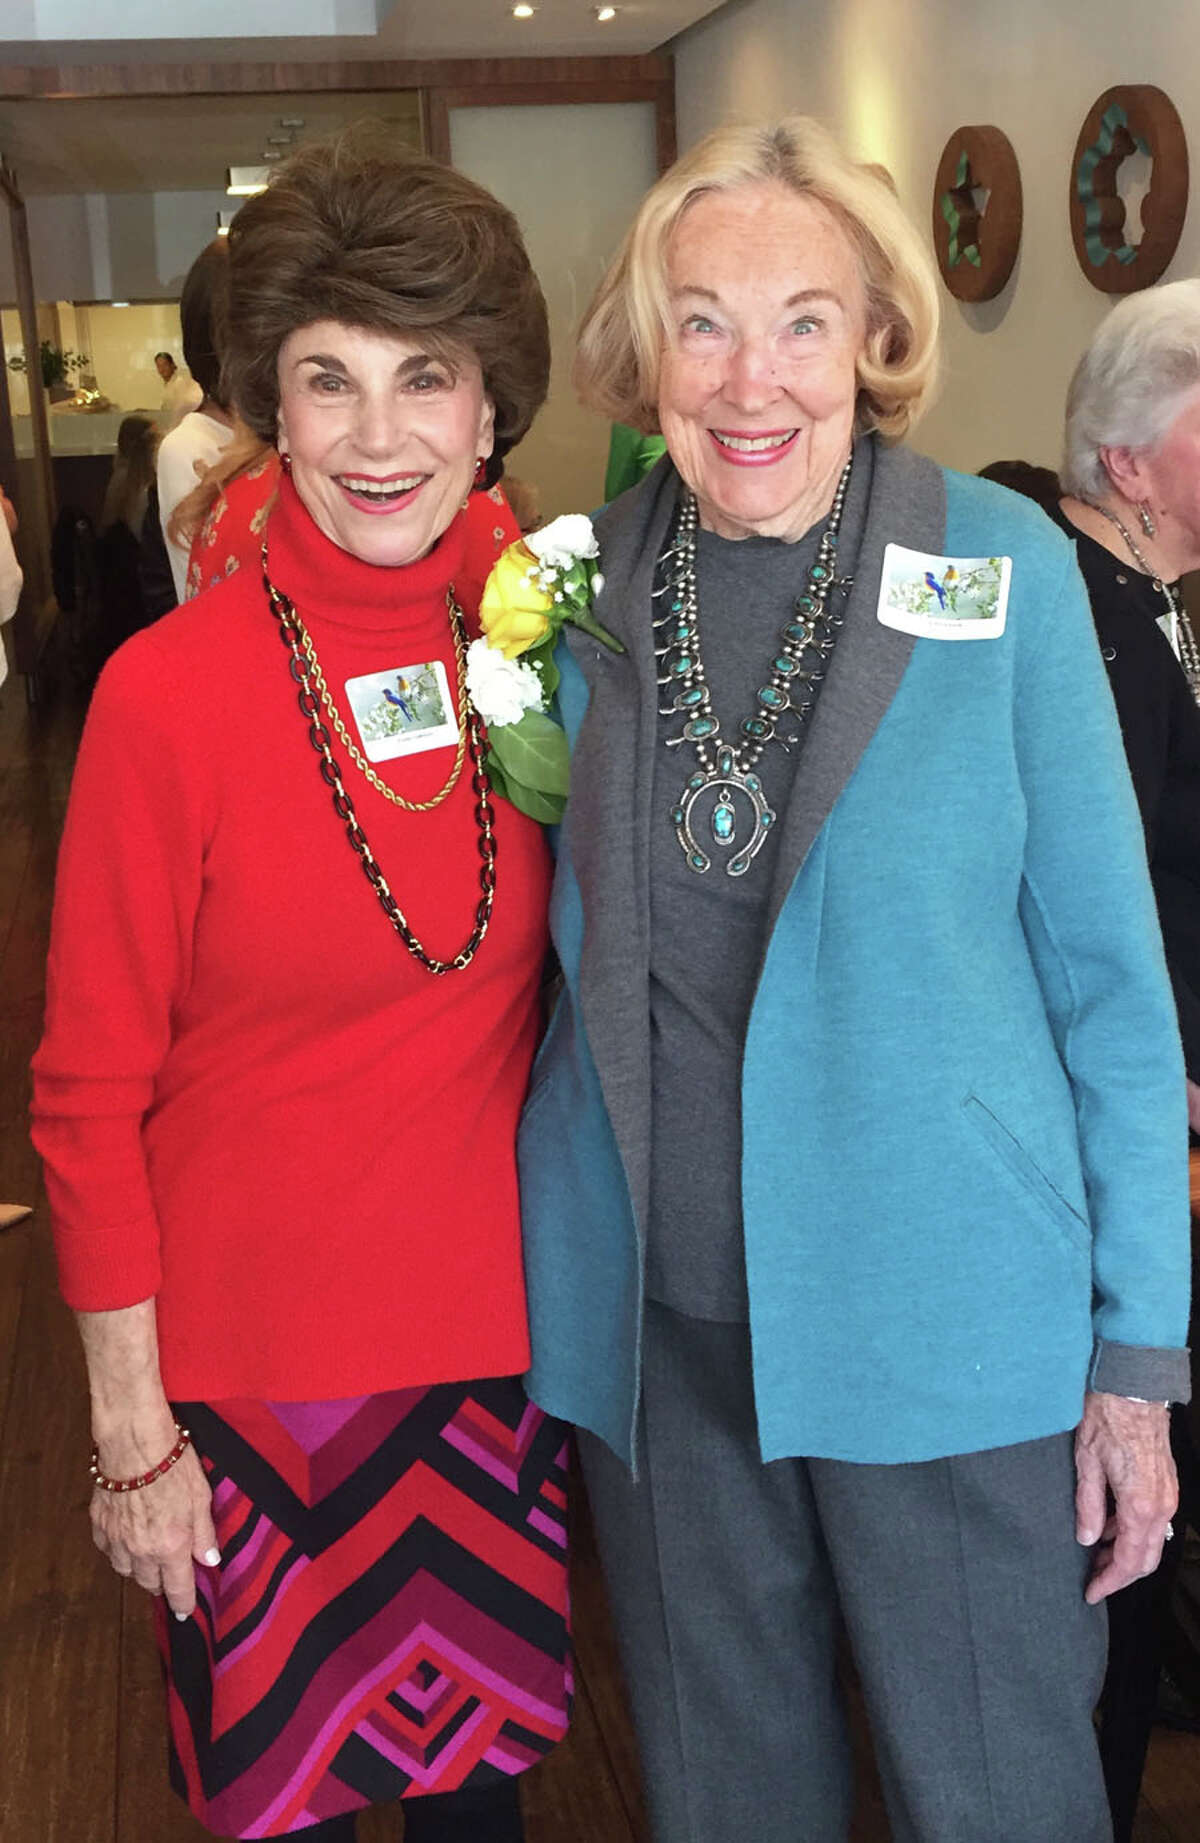 """The Congregational Church of New Canaan's Spring Luncheon on April 1, 2019 shined light on """"Women of Wisdom."""" Parry Grogan and Linda Maranis attend The Congregational Church of New Canaan's Spring Luncheon on April 1, 2019. - First Congregational Church of New Canaan / Contributed photo"""